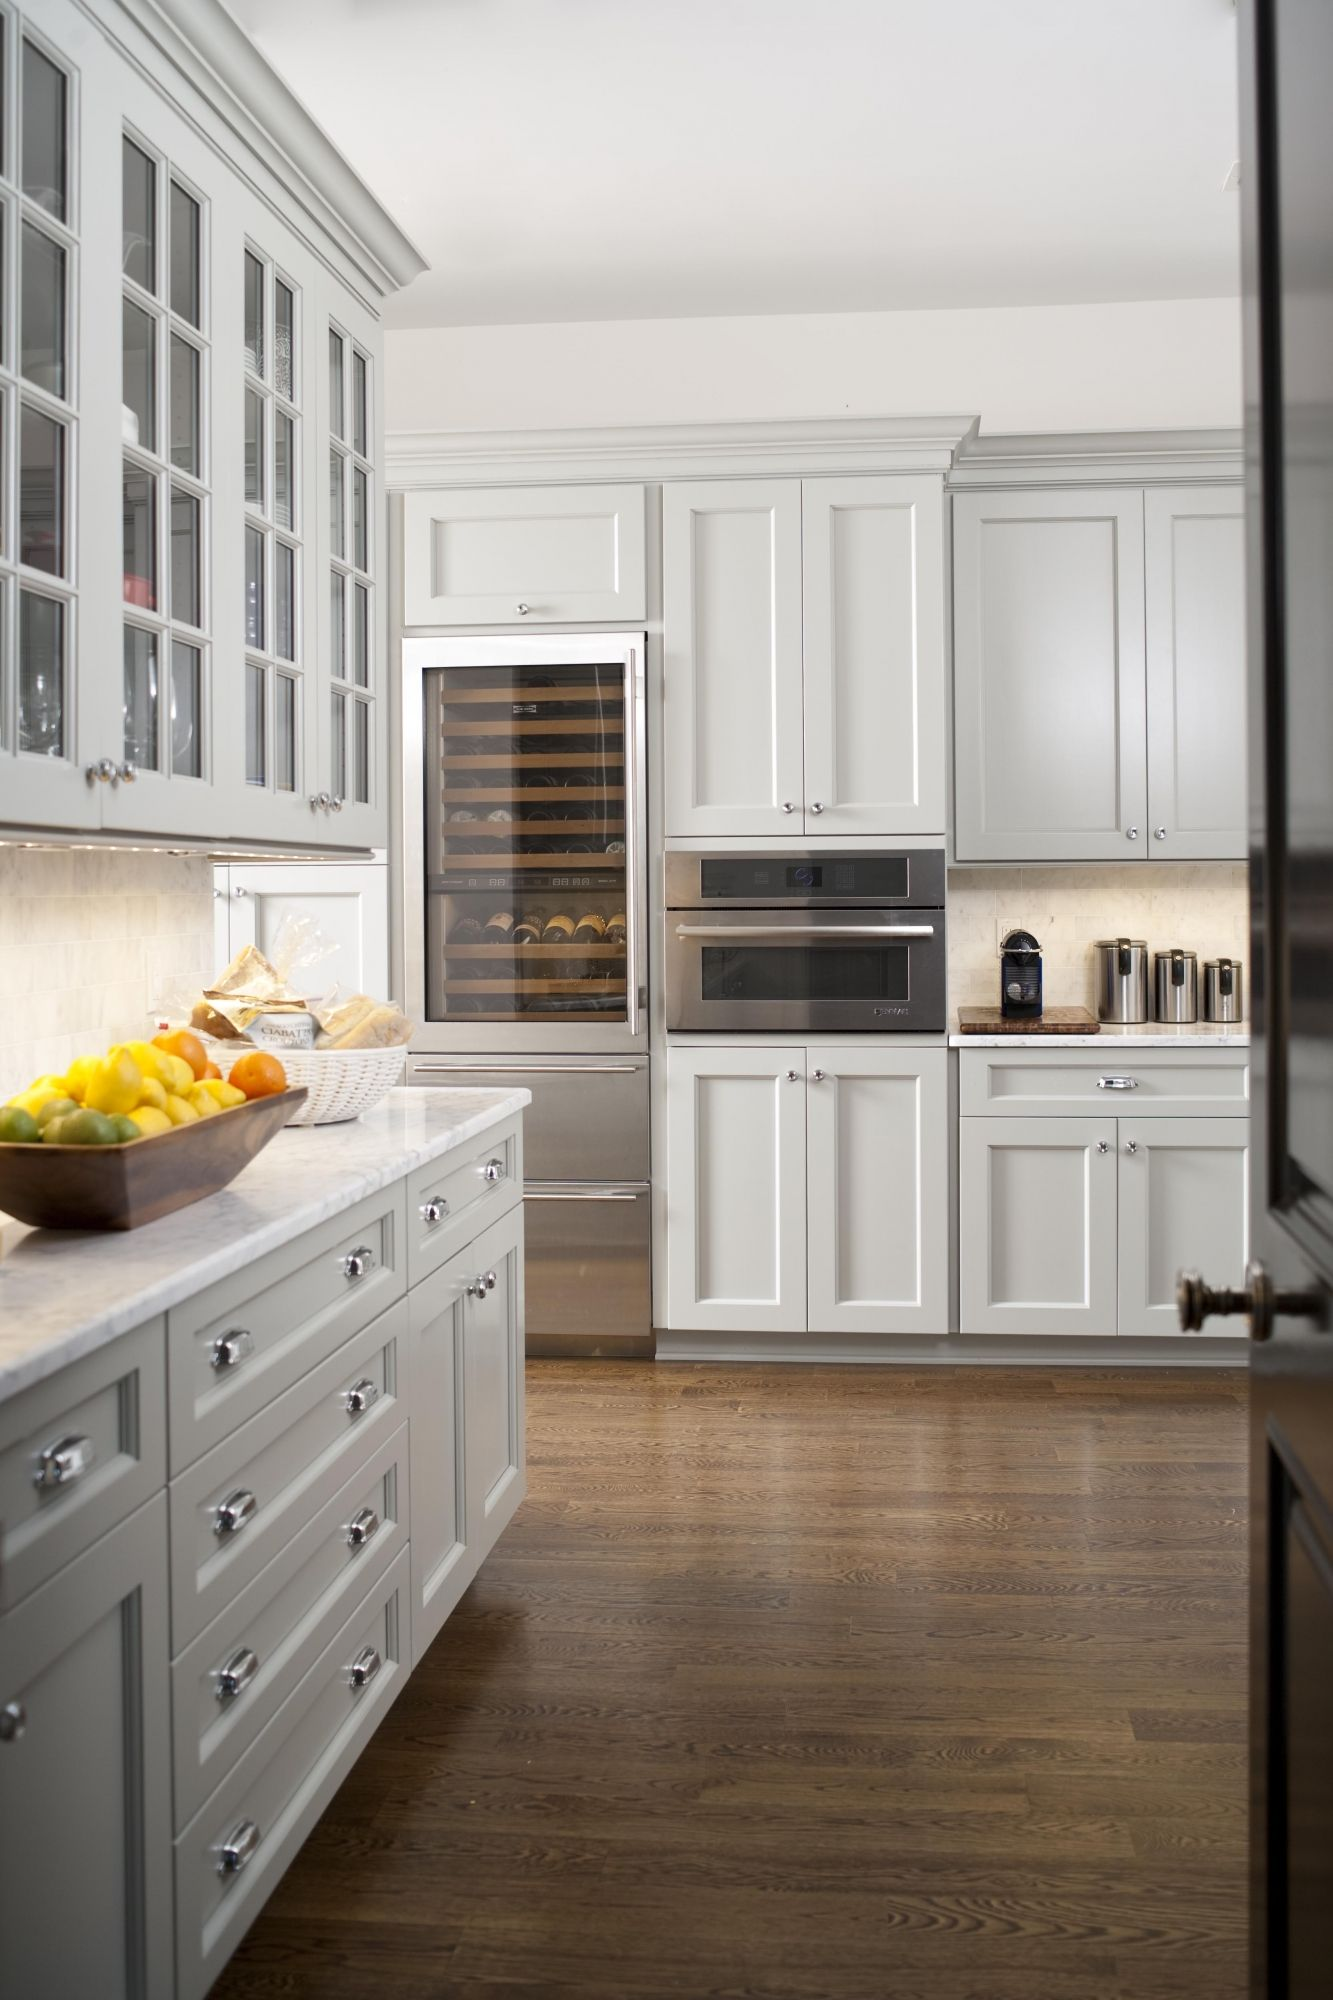 Whitepainted poplar cabinets are inset for a quality look and feel